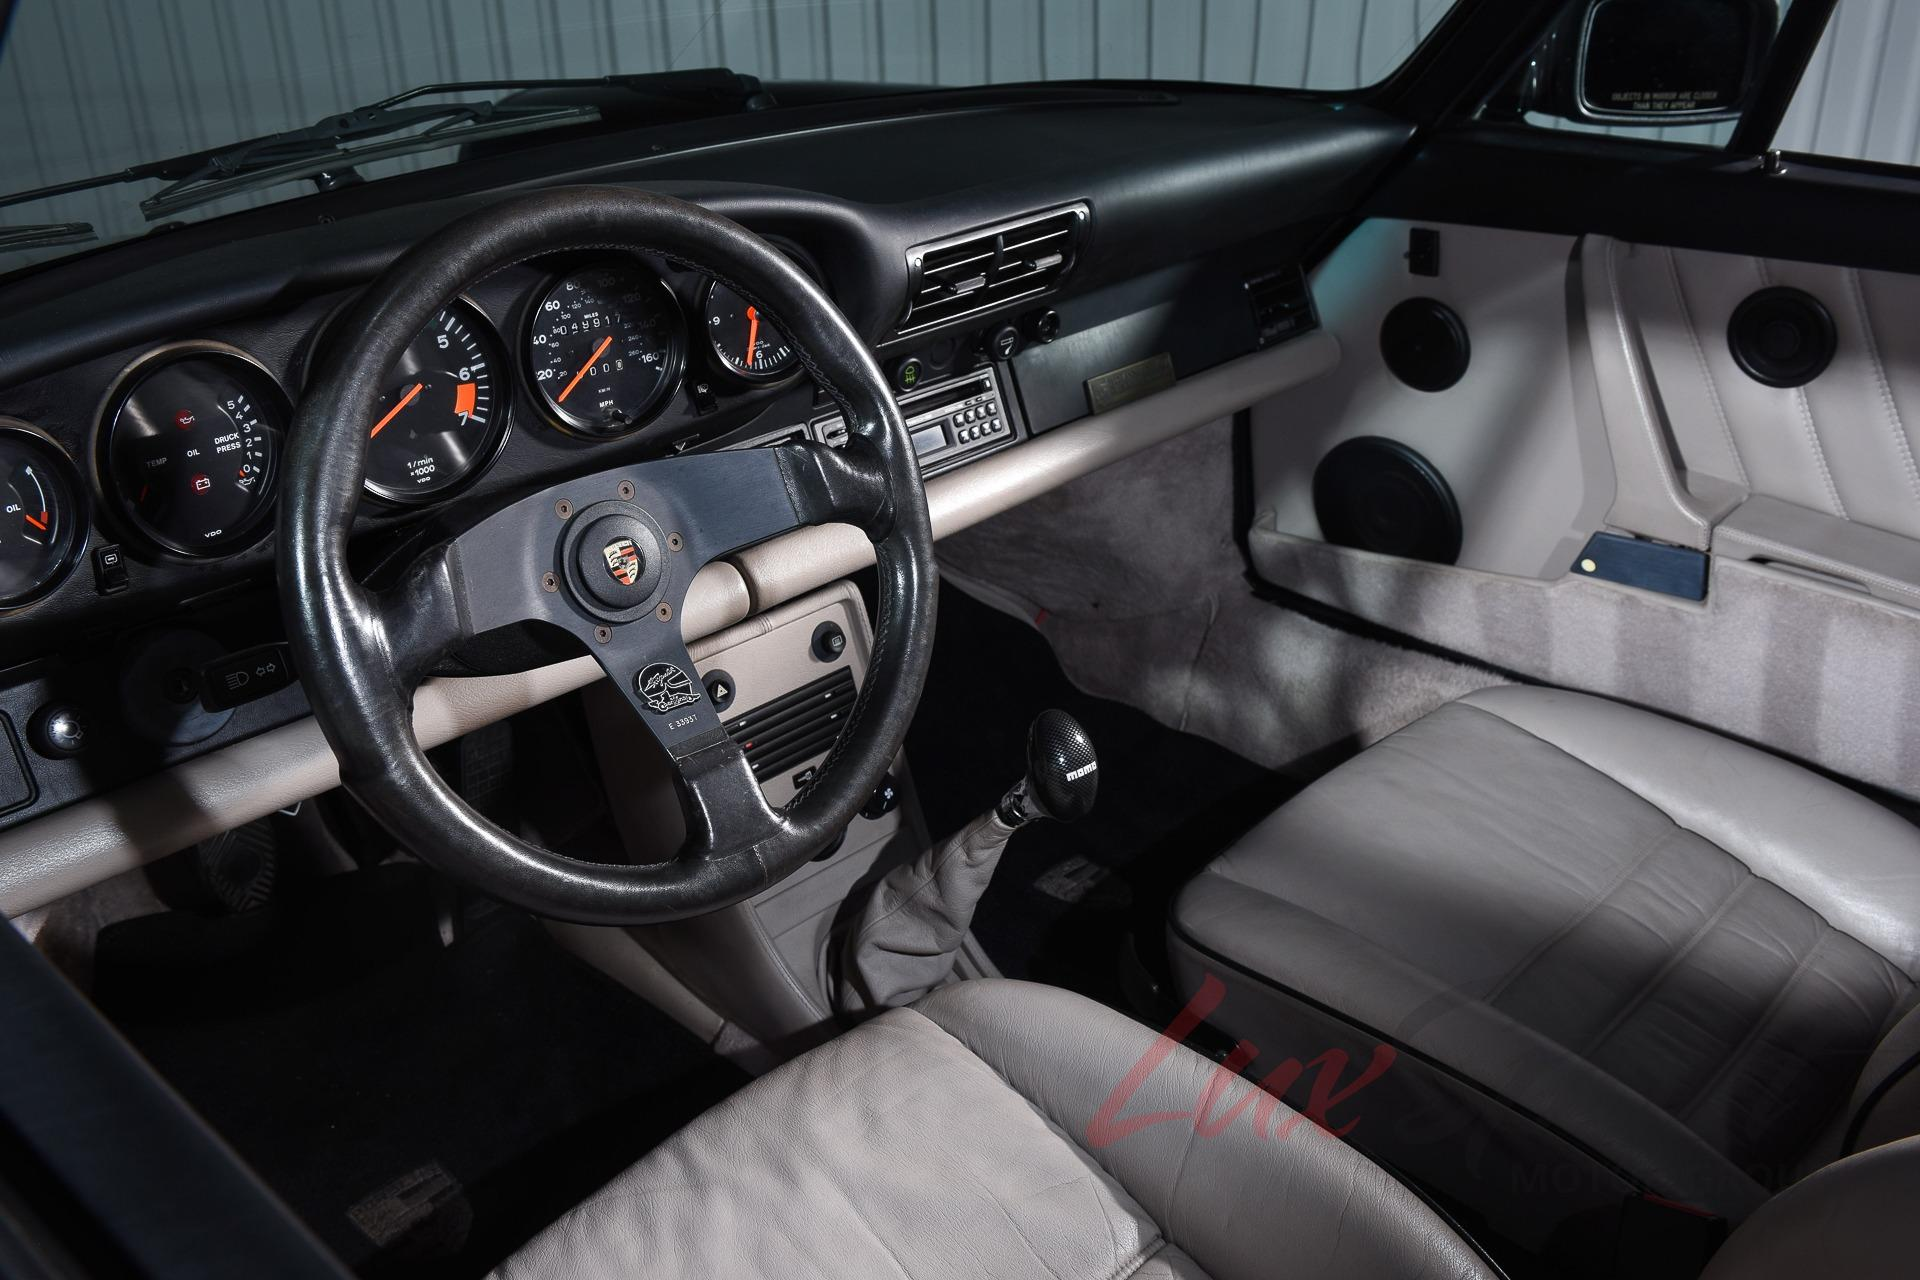 Used 1989 Porsche 911 Carrera Anniversary Coupe Carrera | New Hyde Park, NY